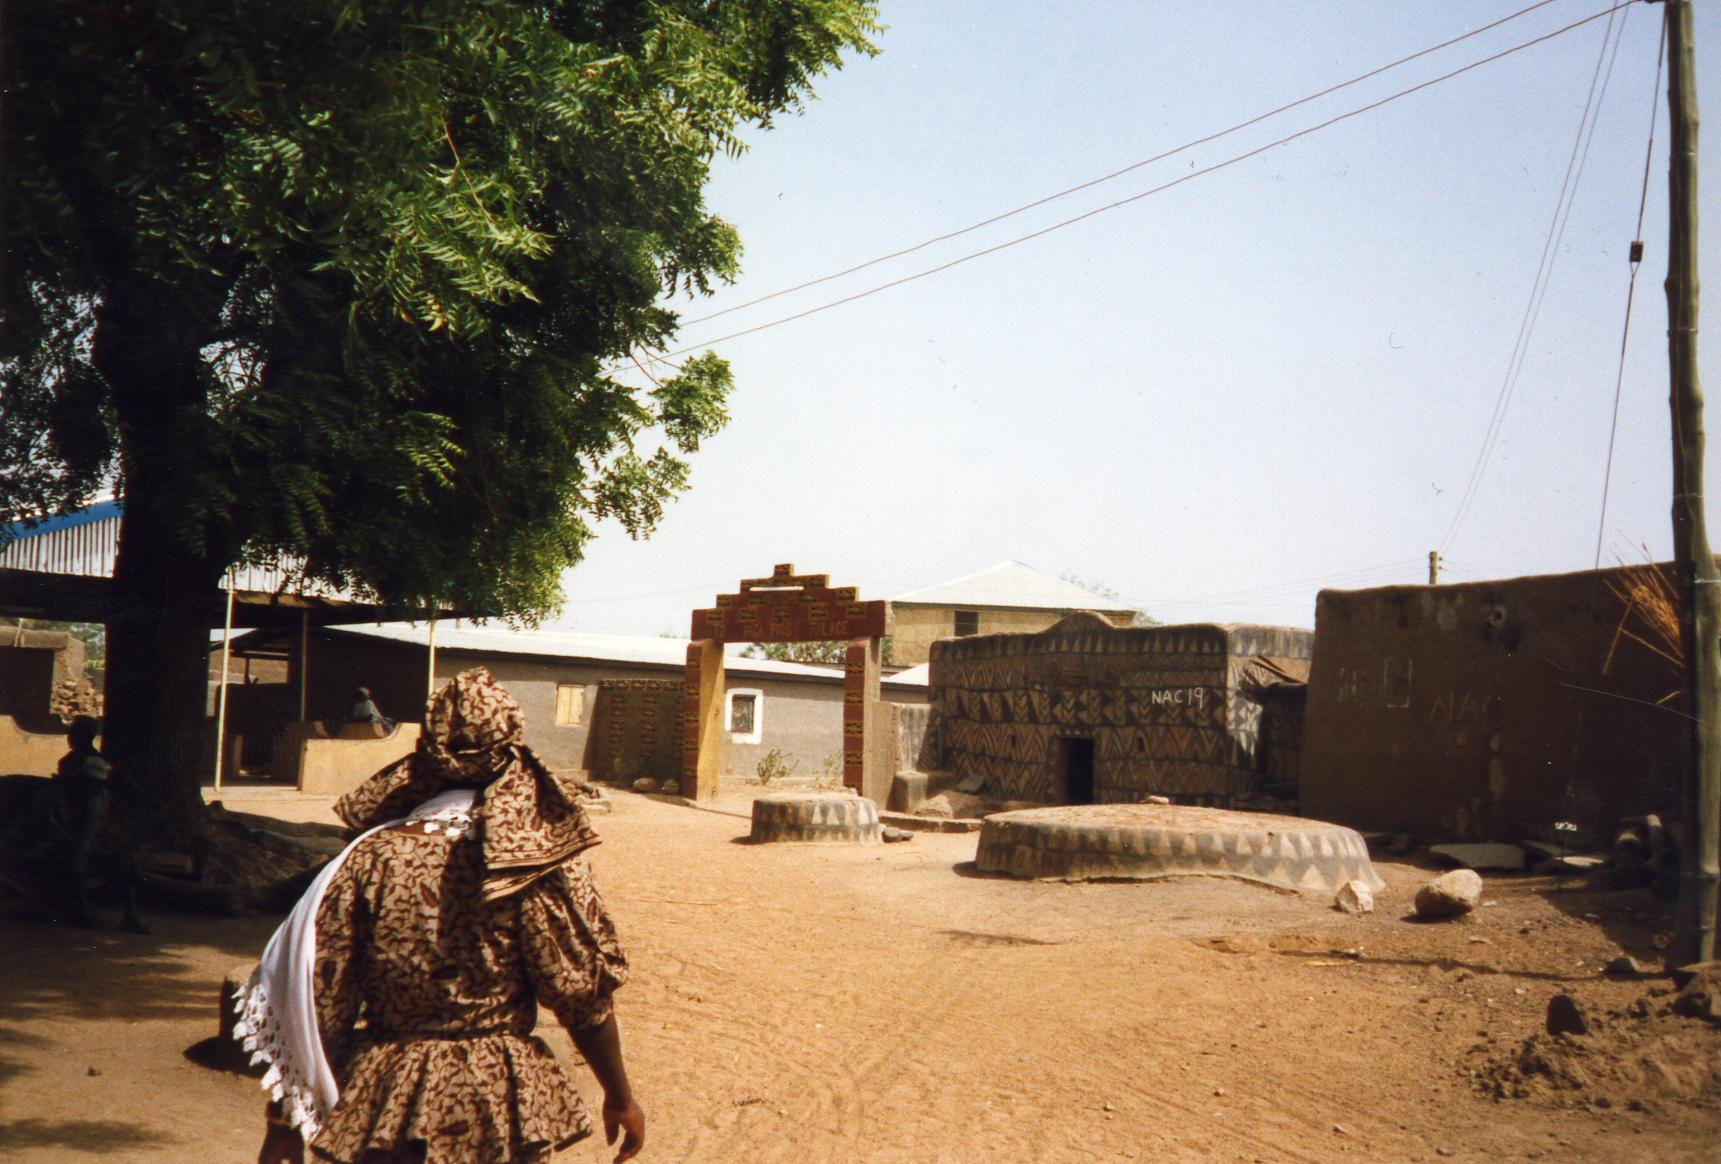 Entrance to Paga Pios Palace